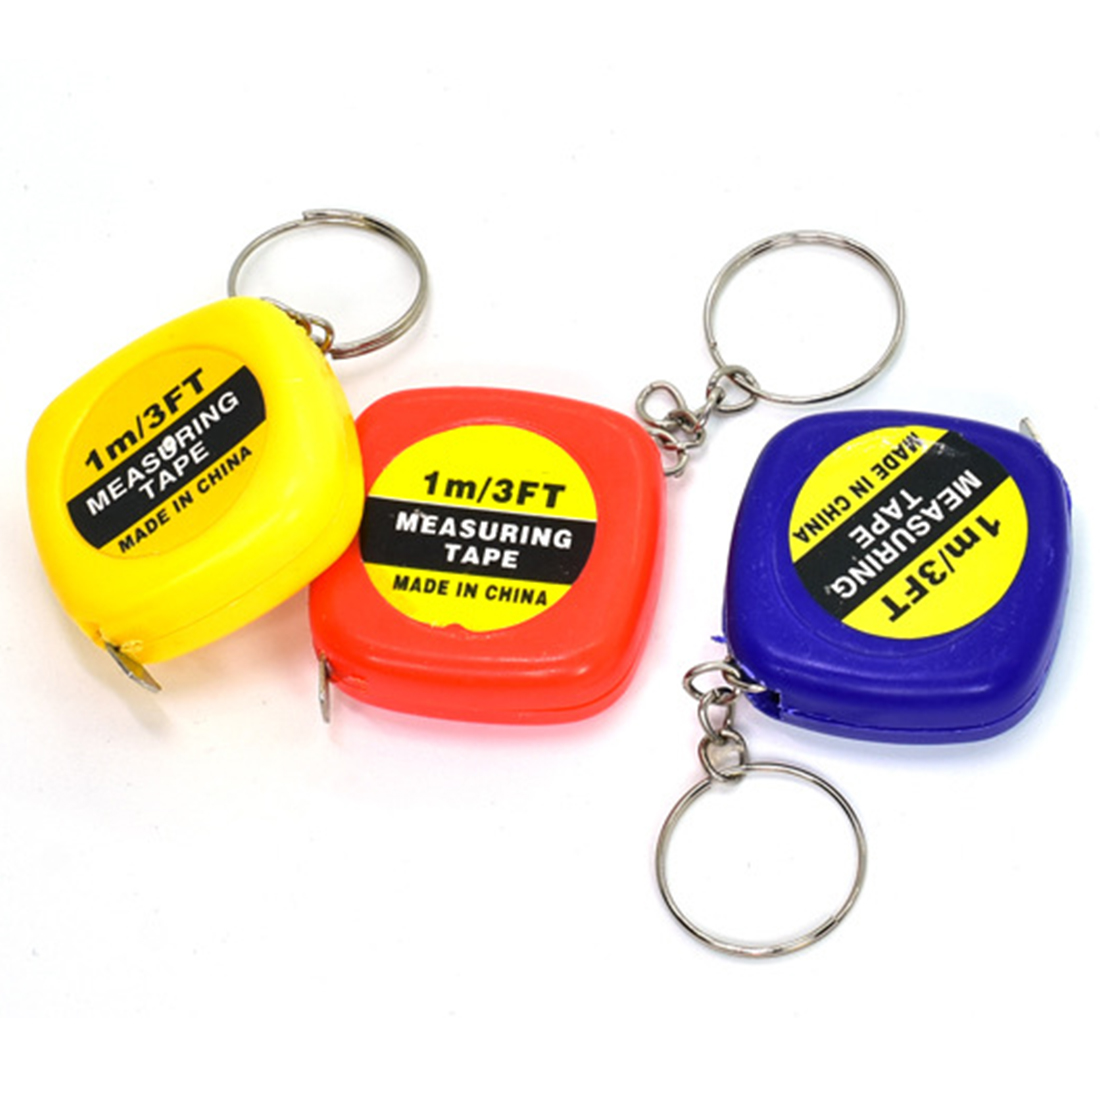 TOP 1pc 1m/3ft Easy Retractable Ruler Tape Measure Mini Portable Pull Ruler Keychain Color Random random color hook 1pc